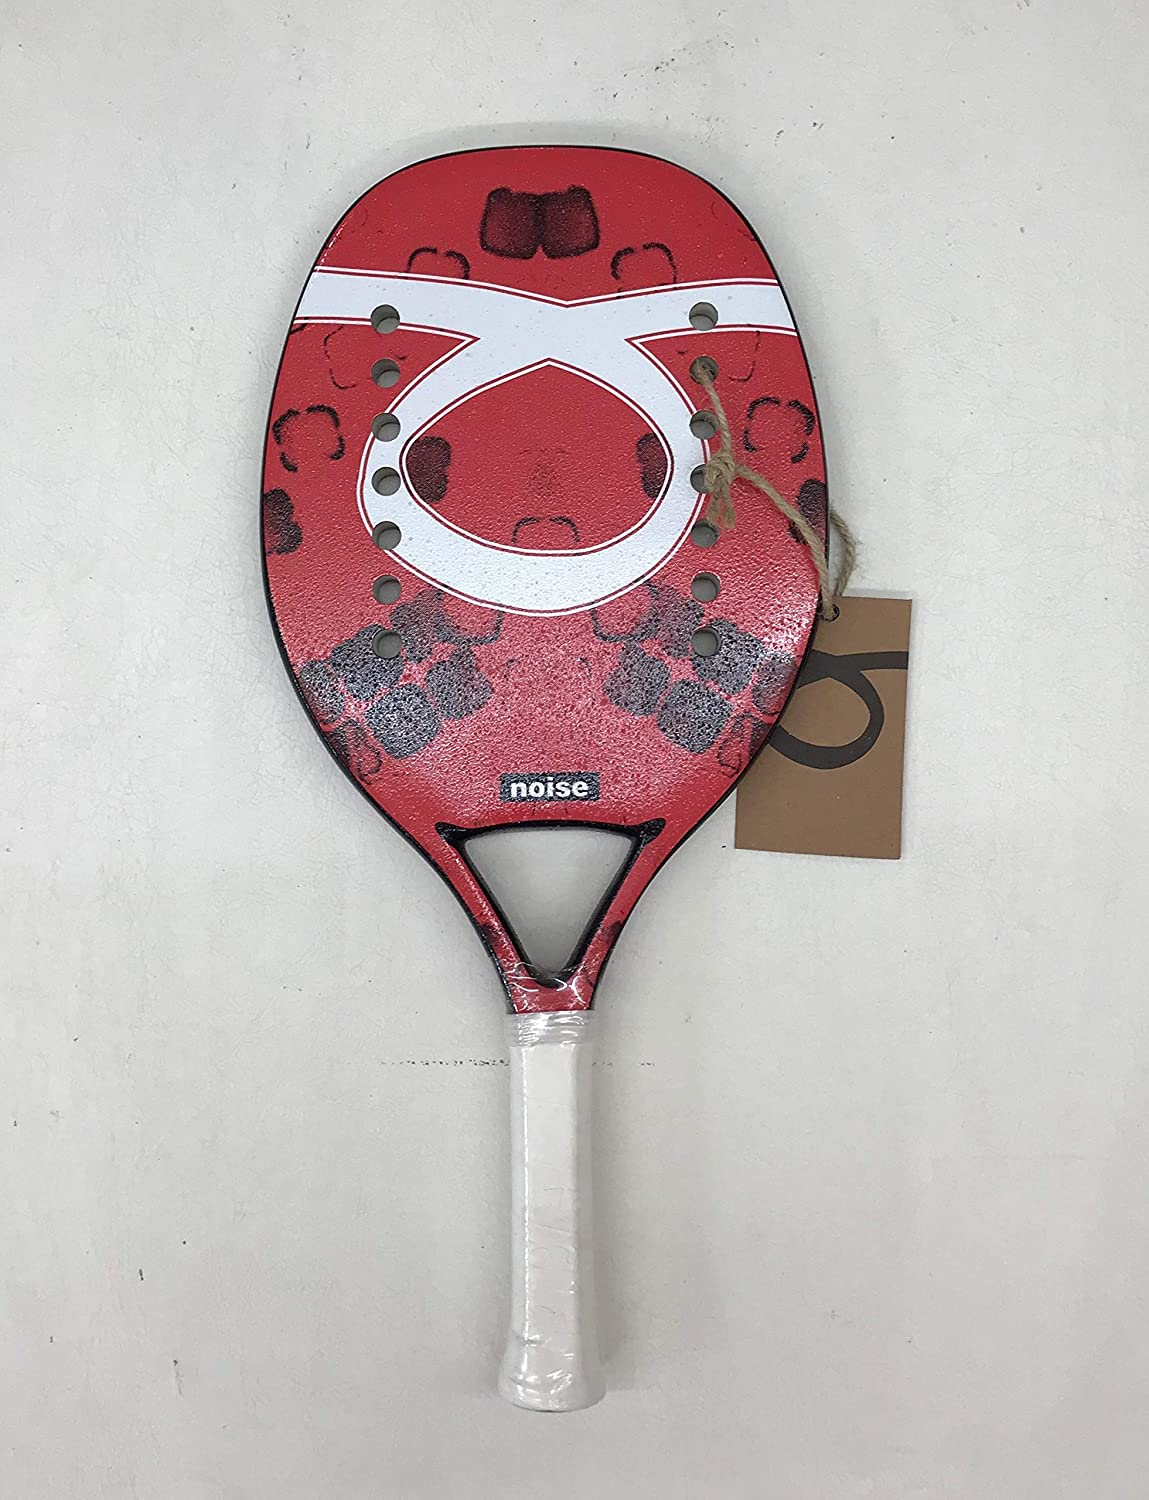 TOM OUTRIDE Pala de Tenis Playa Noise Red 2019: Amazon.es ...